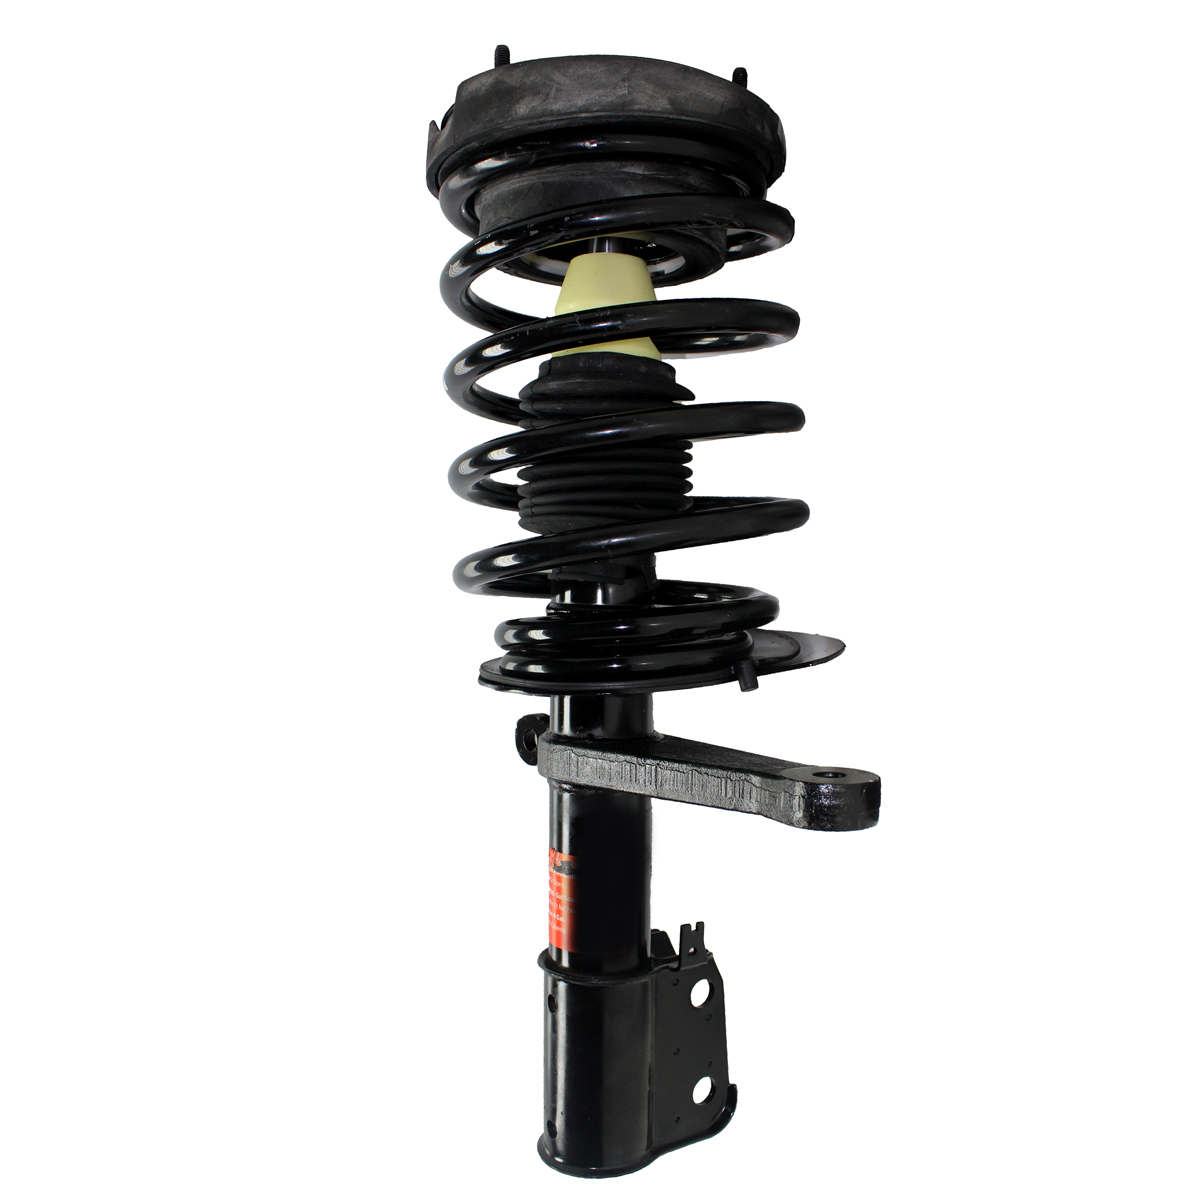 Front Driver Side Complete Strut & Spring Assembly  - 1993-1997 Dodge Intrepid, Concorde & Vision